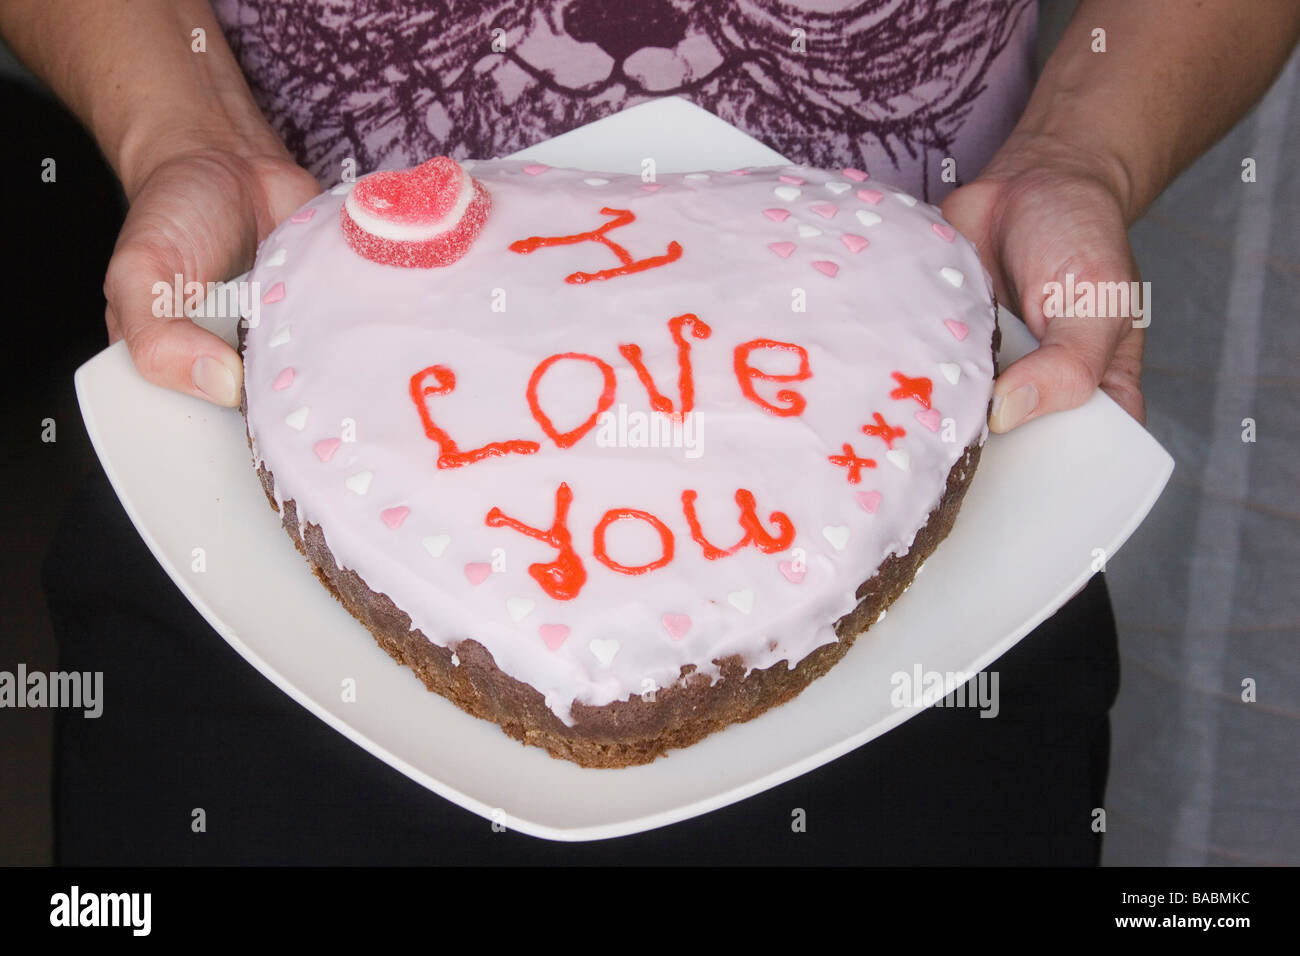 Woman S Hands Holding Home Made Heart Shaped Cake Decorated With The